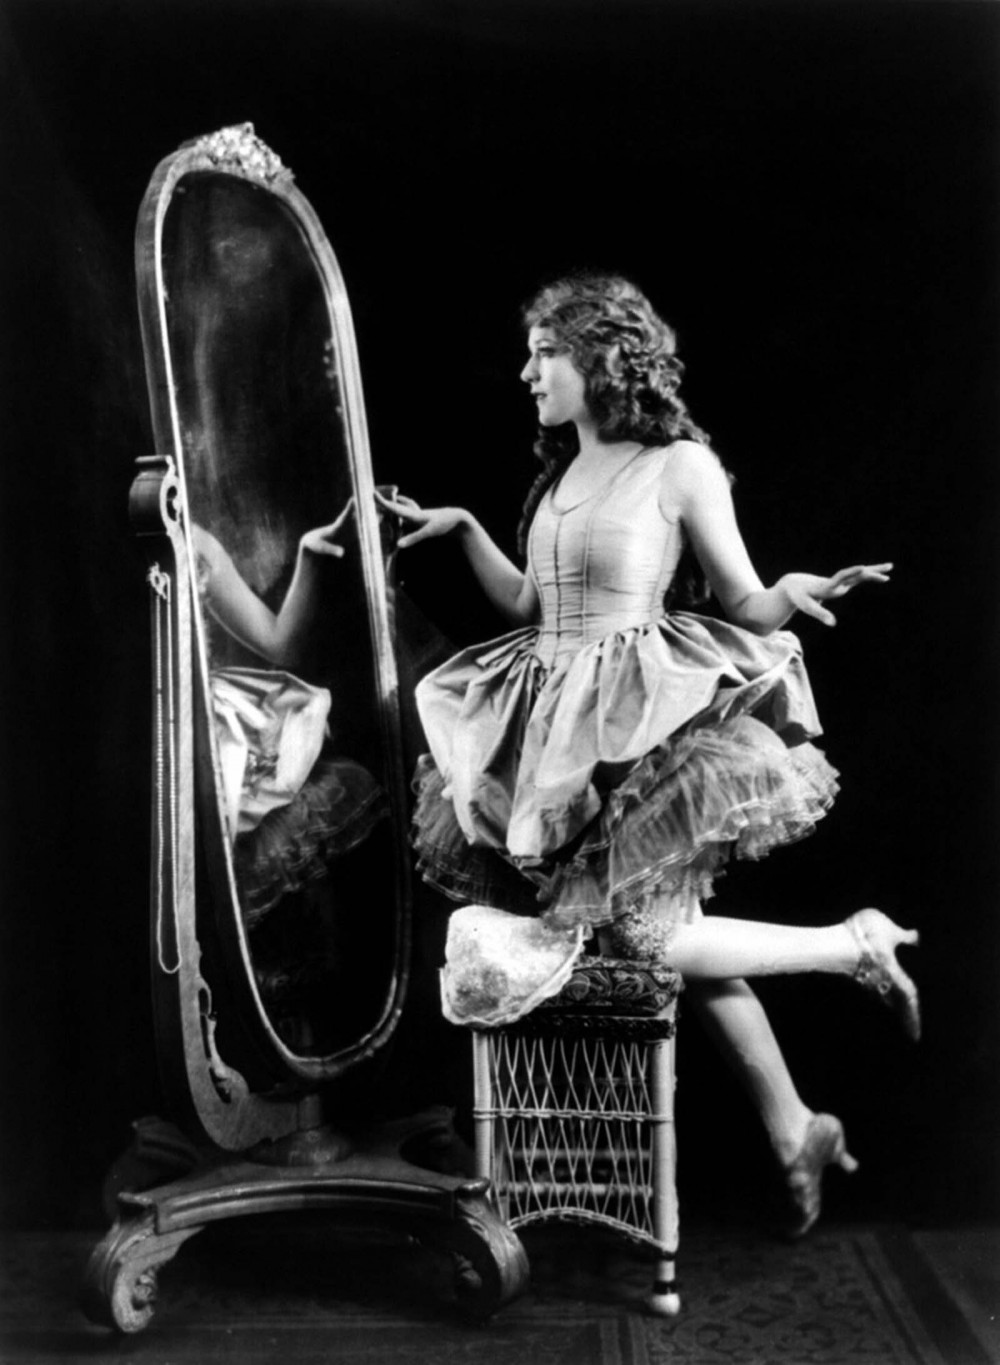 Mary Pickford posing by a full-length mirror and wearing a knee-length dress.